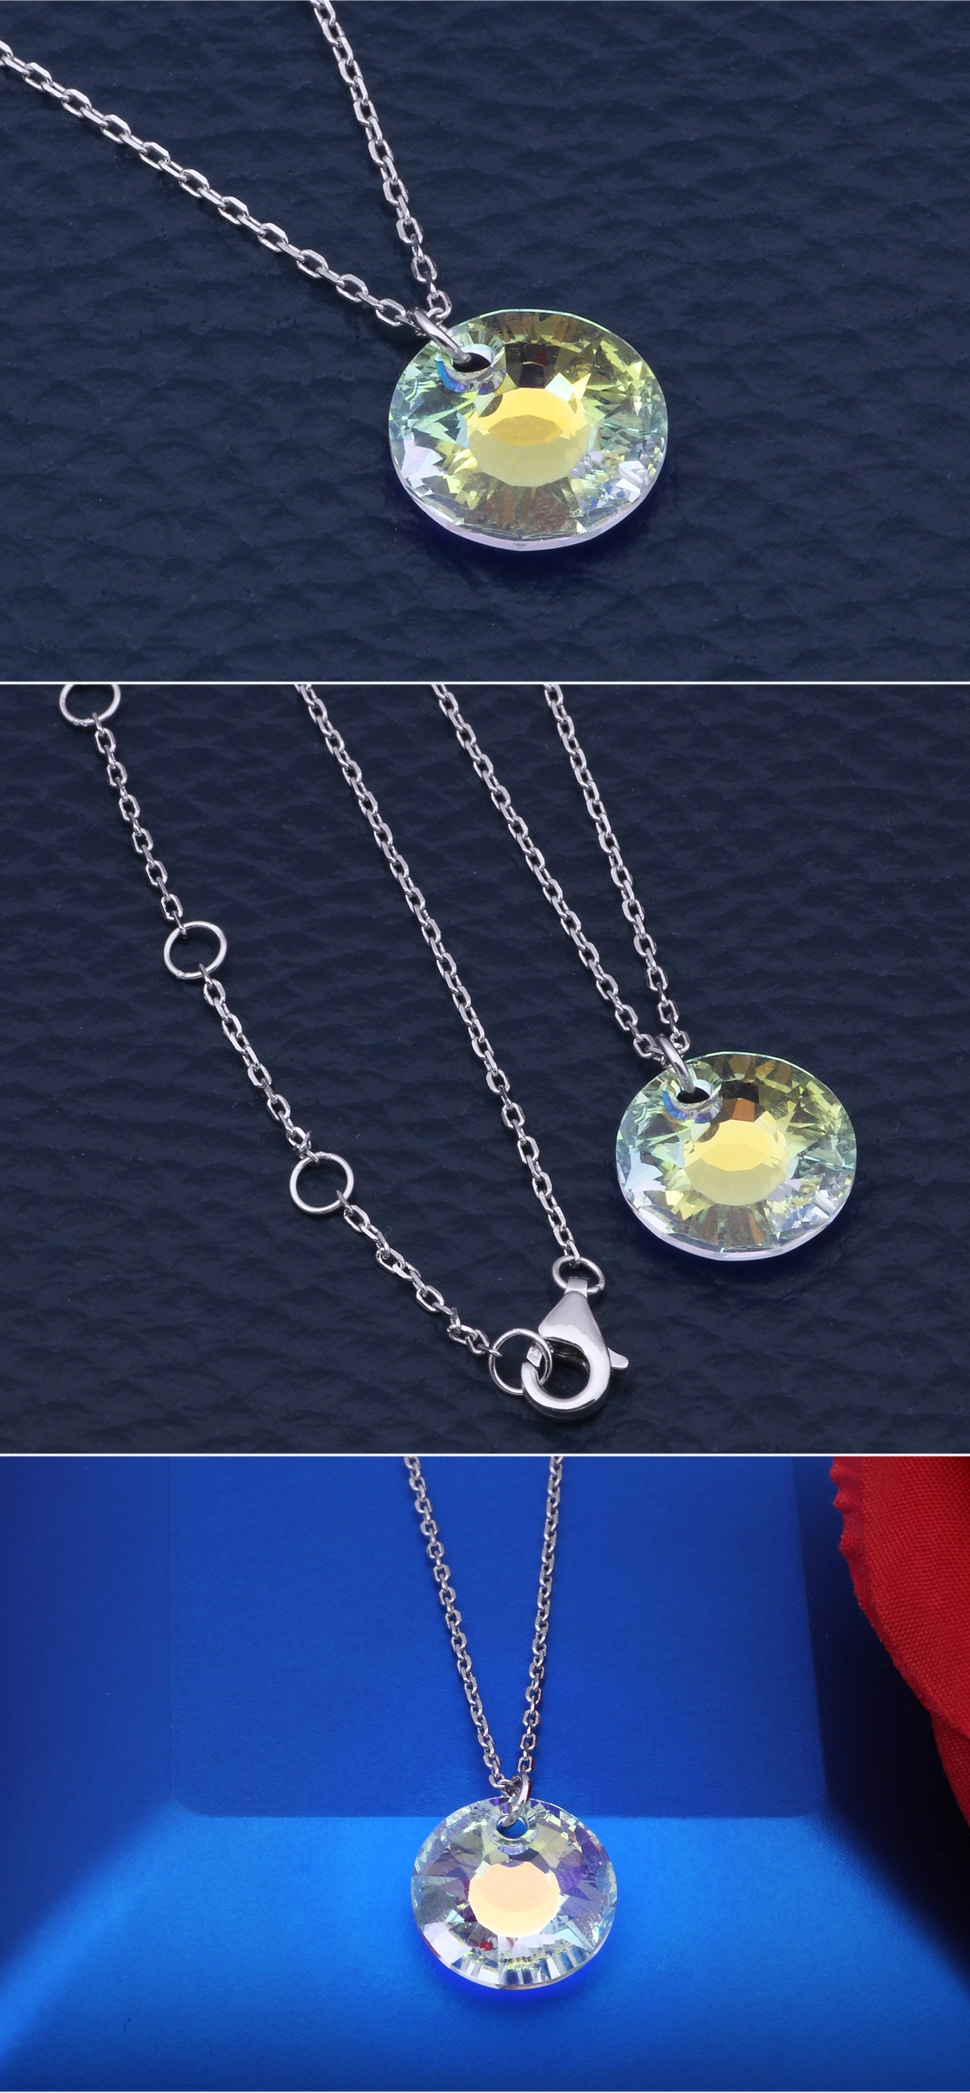 Classic Austrian Crystal Sunflower Pendant Solid 925 Sterling Silver Necklace